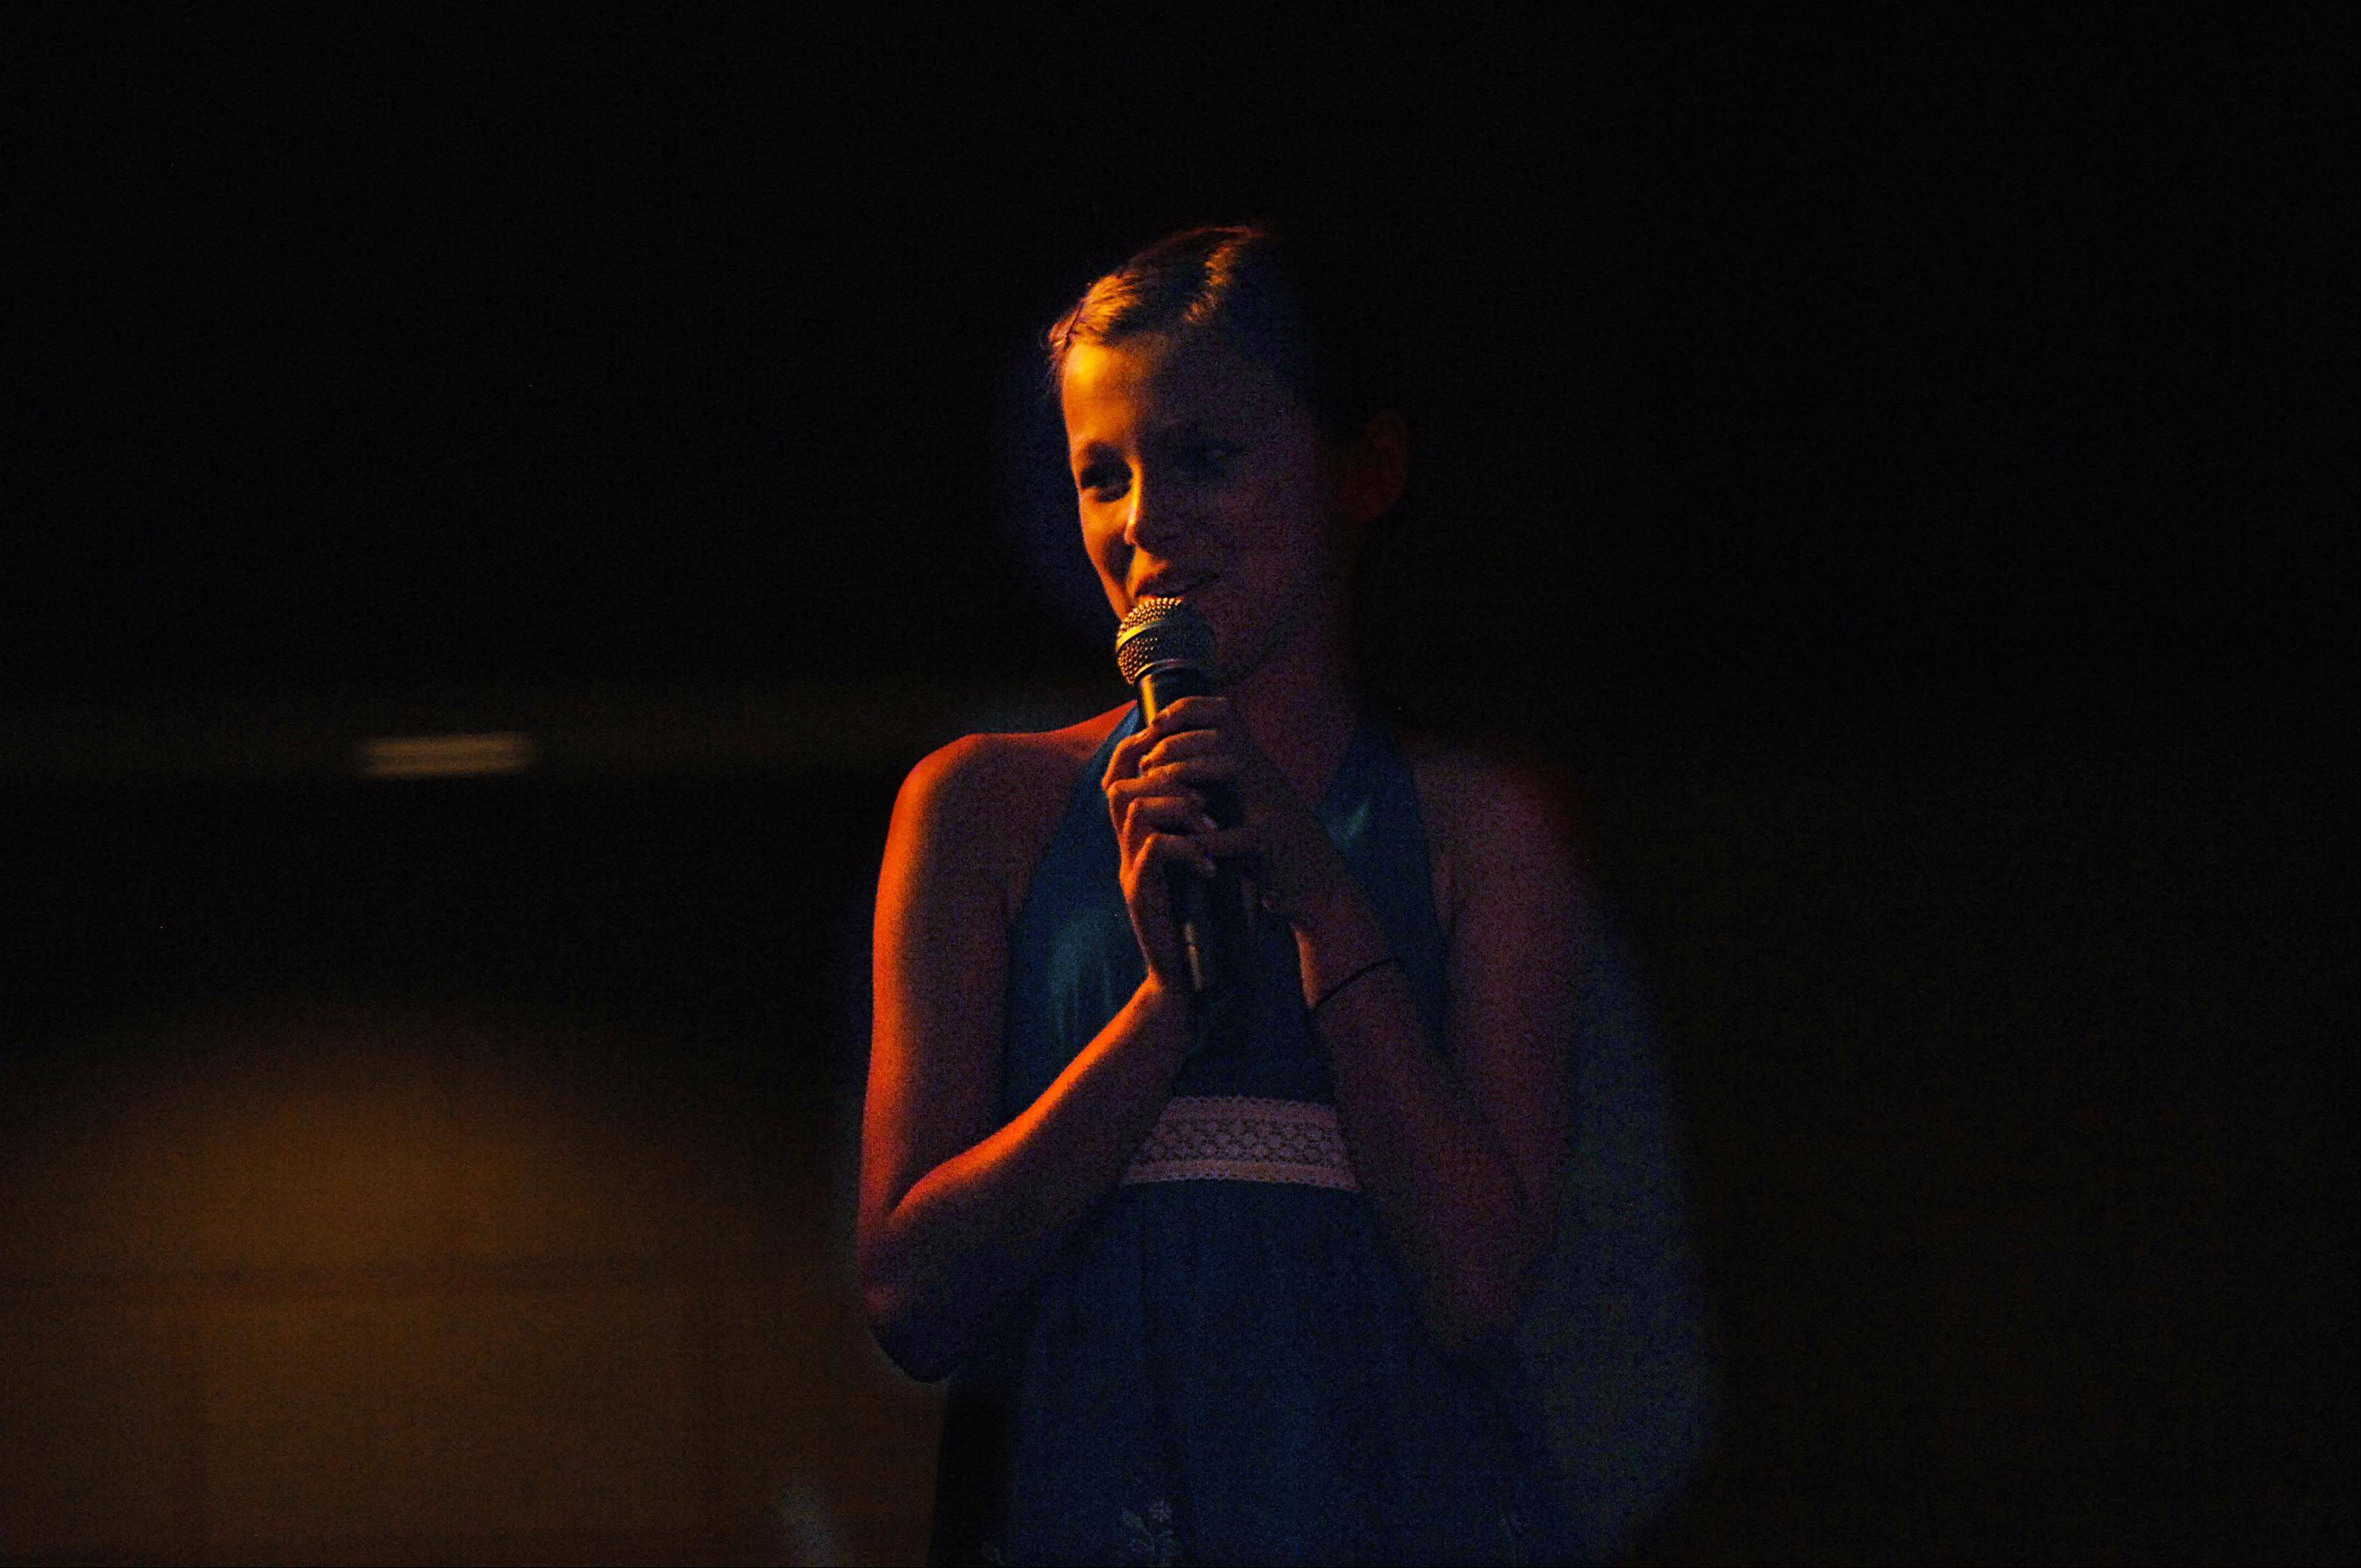 Eleven-year-old Kiersten Larsen sings What It Means To Be A Friend onstage Monday night at the 29th Annual Kane County Fair Talent Contest in the Prairie Events Center at the fairgrounds in St. Charles. She is from South Elgin.